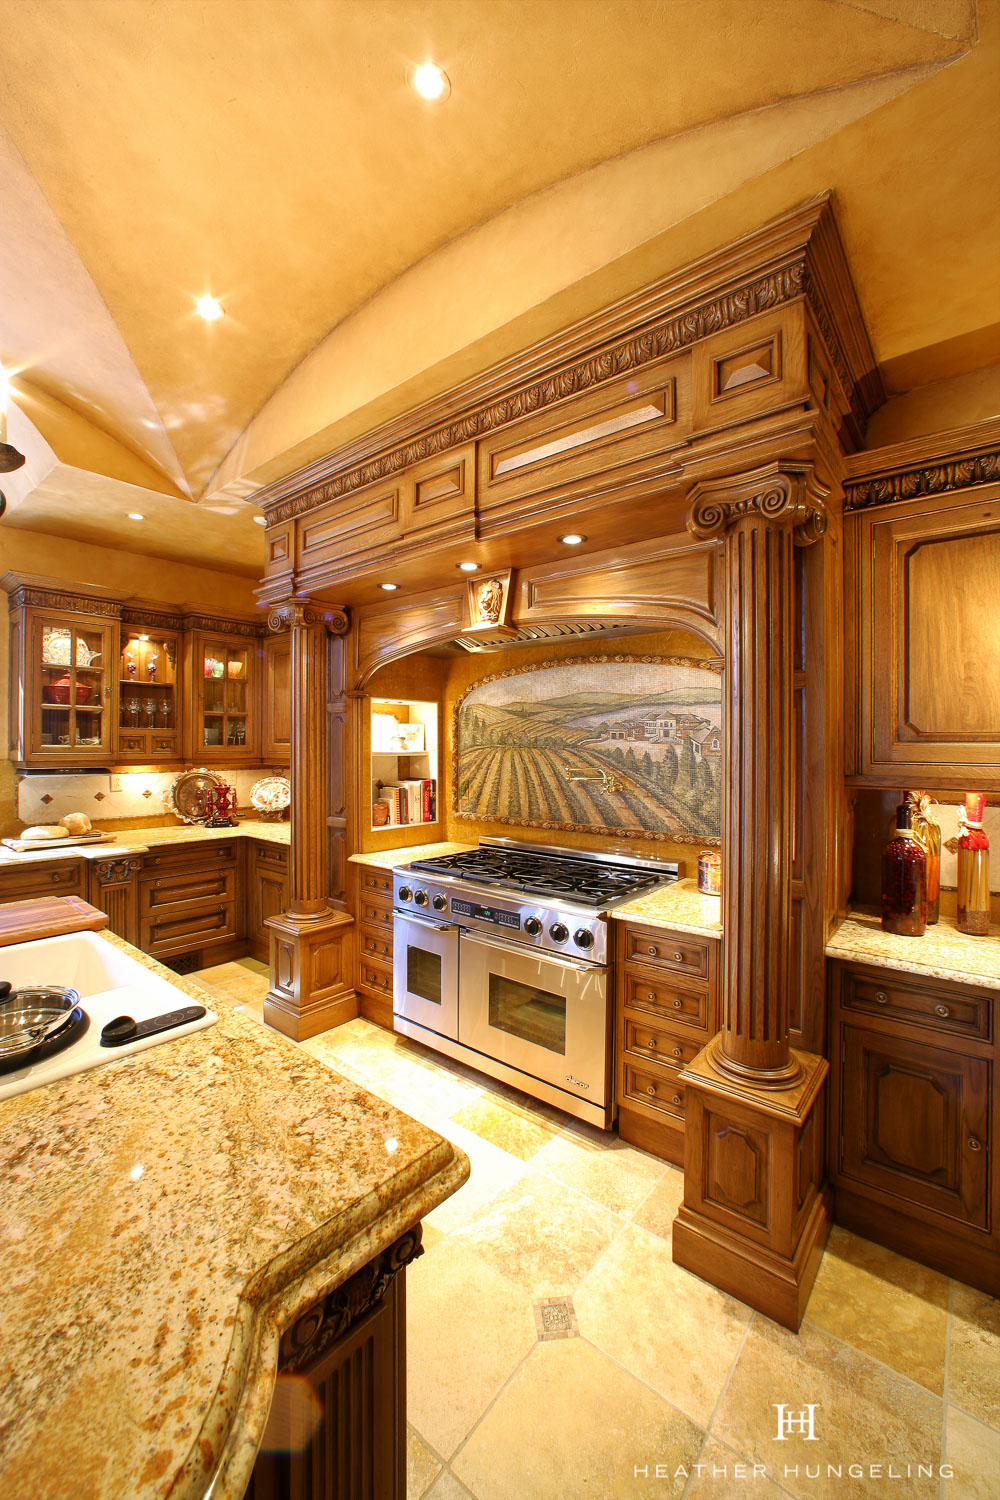 Architectural columns give a Tuscan feel to the large hood design in this luxury Clive Christian kitchen.